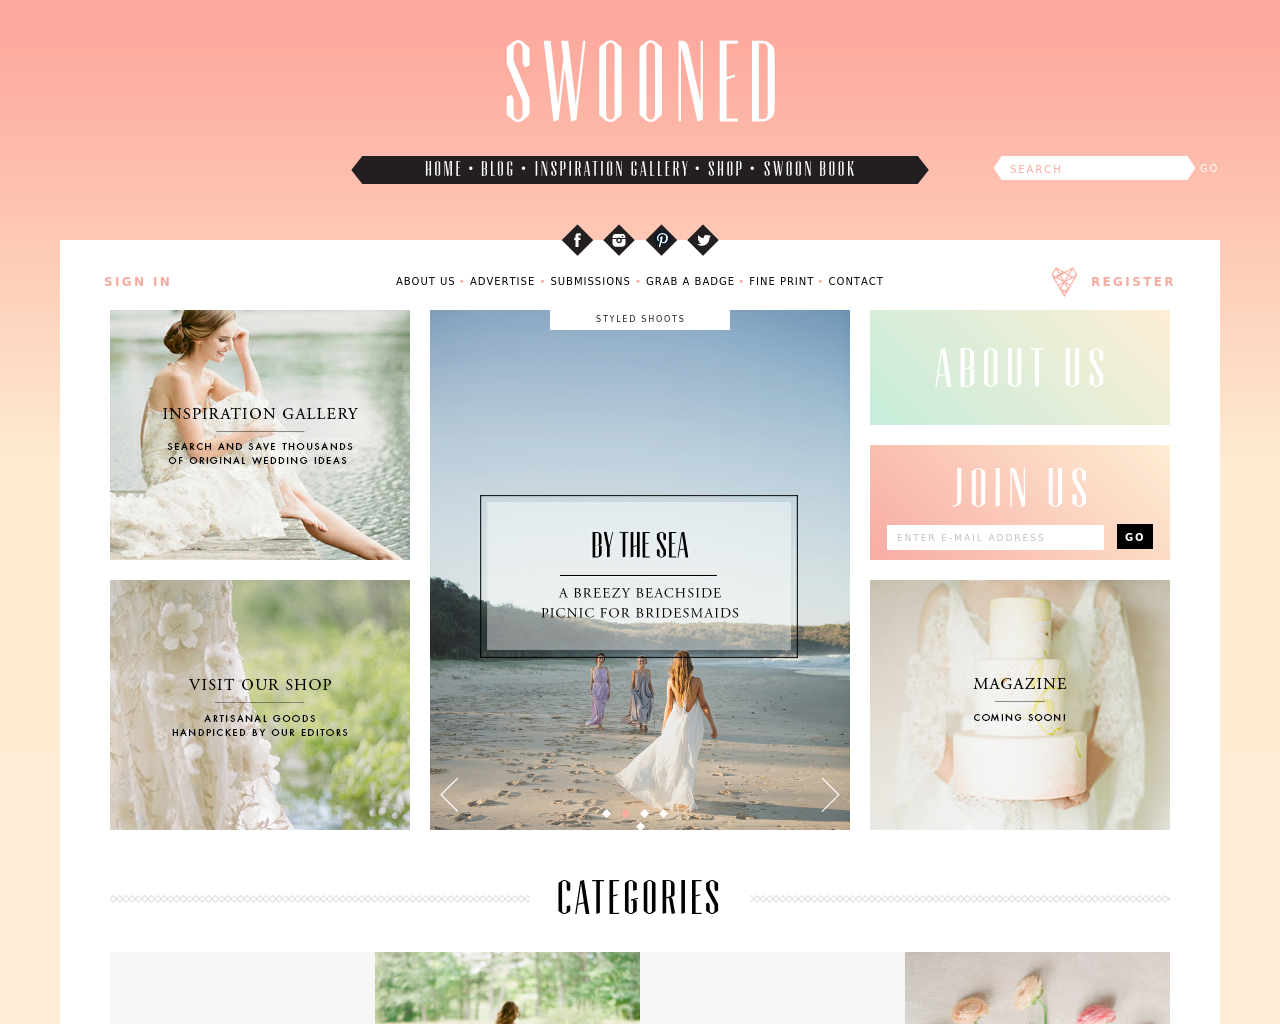 SWOONED-Advertising-Reviews-Pricing